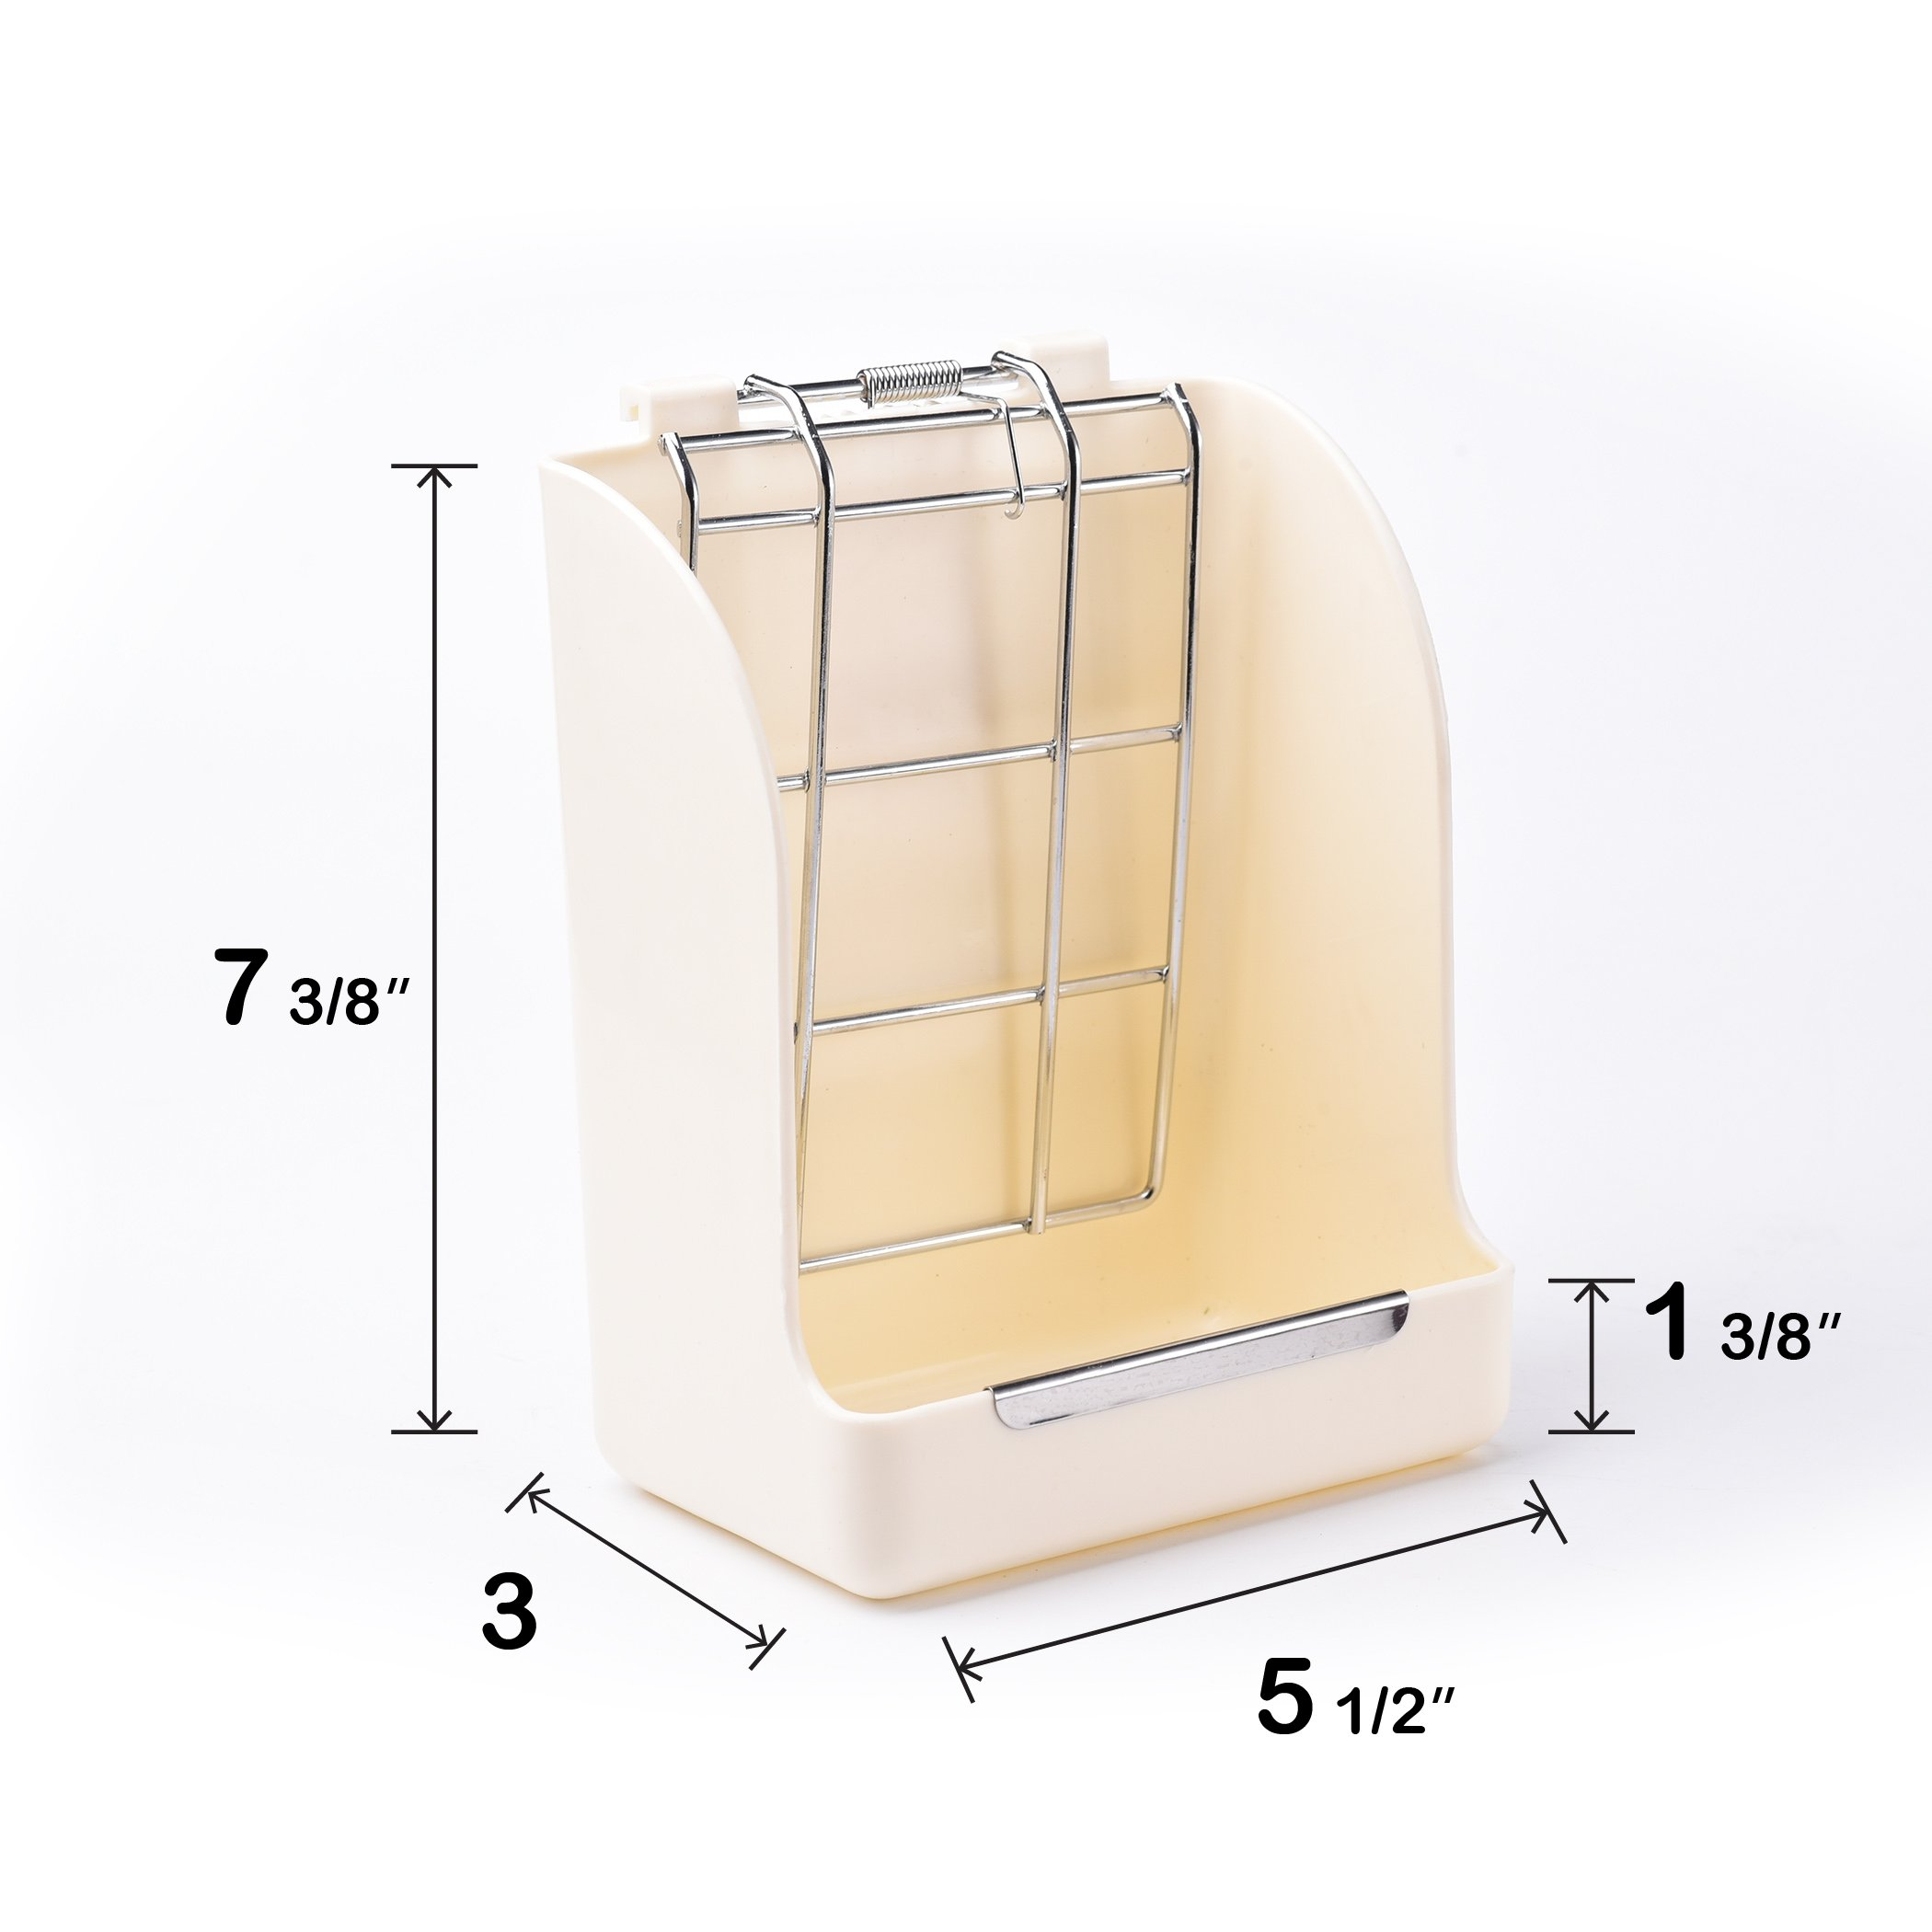 CalPalmy (Upgraded 2-Pack) Hay Feeder/Rack - Ideal for Rabbit/Chinchilla/Guinea Pig - Keeps Grass Clean & Fresh/Non-Toxic, BPA Free Plastic/Minimizing Waste/Mess by CalPalmy (Image #4)